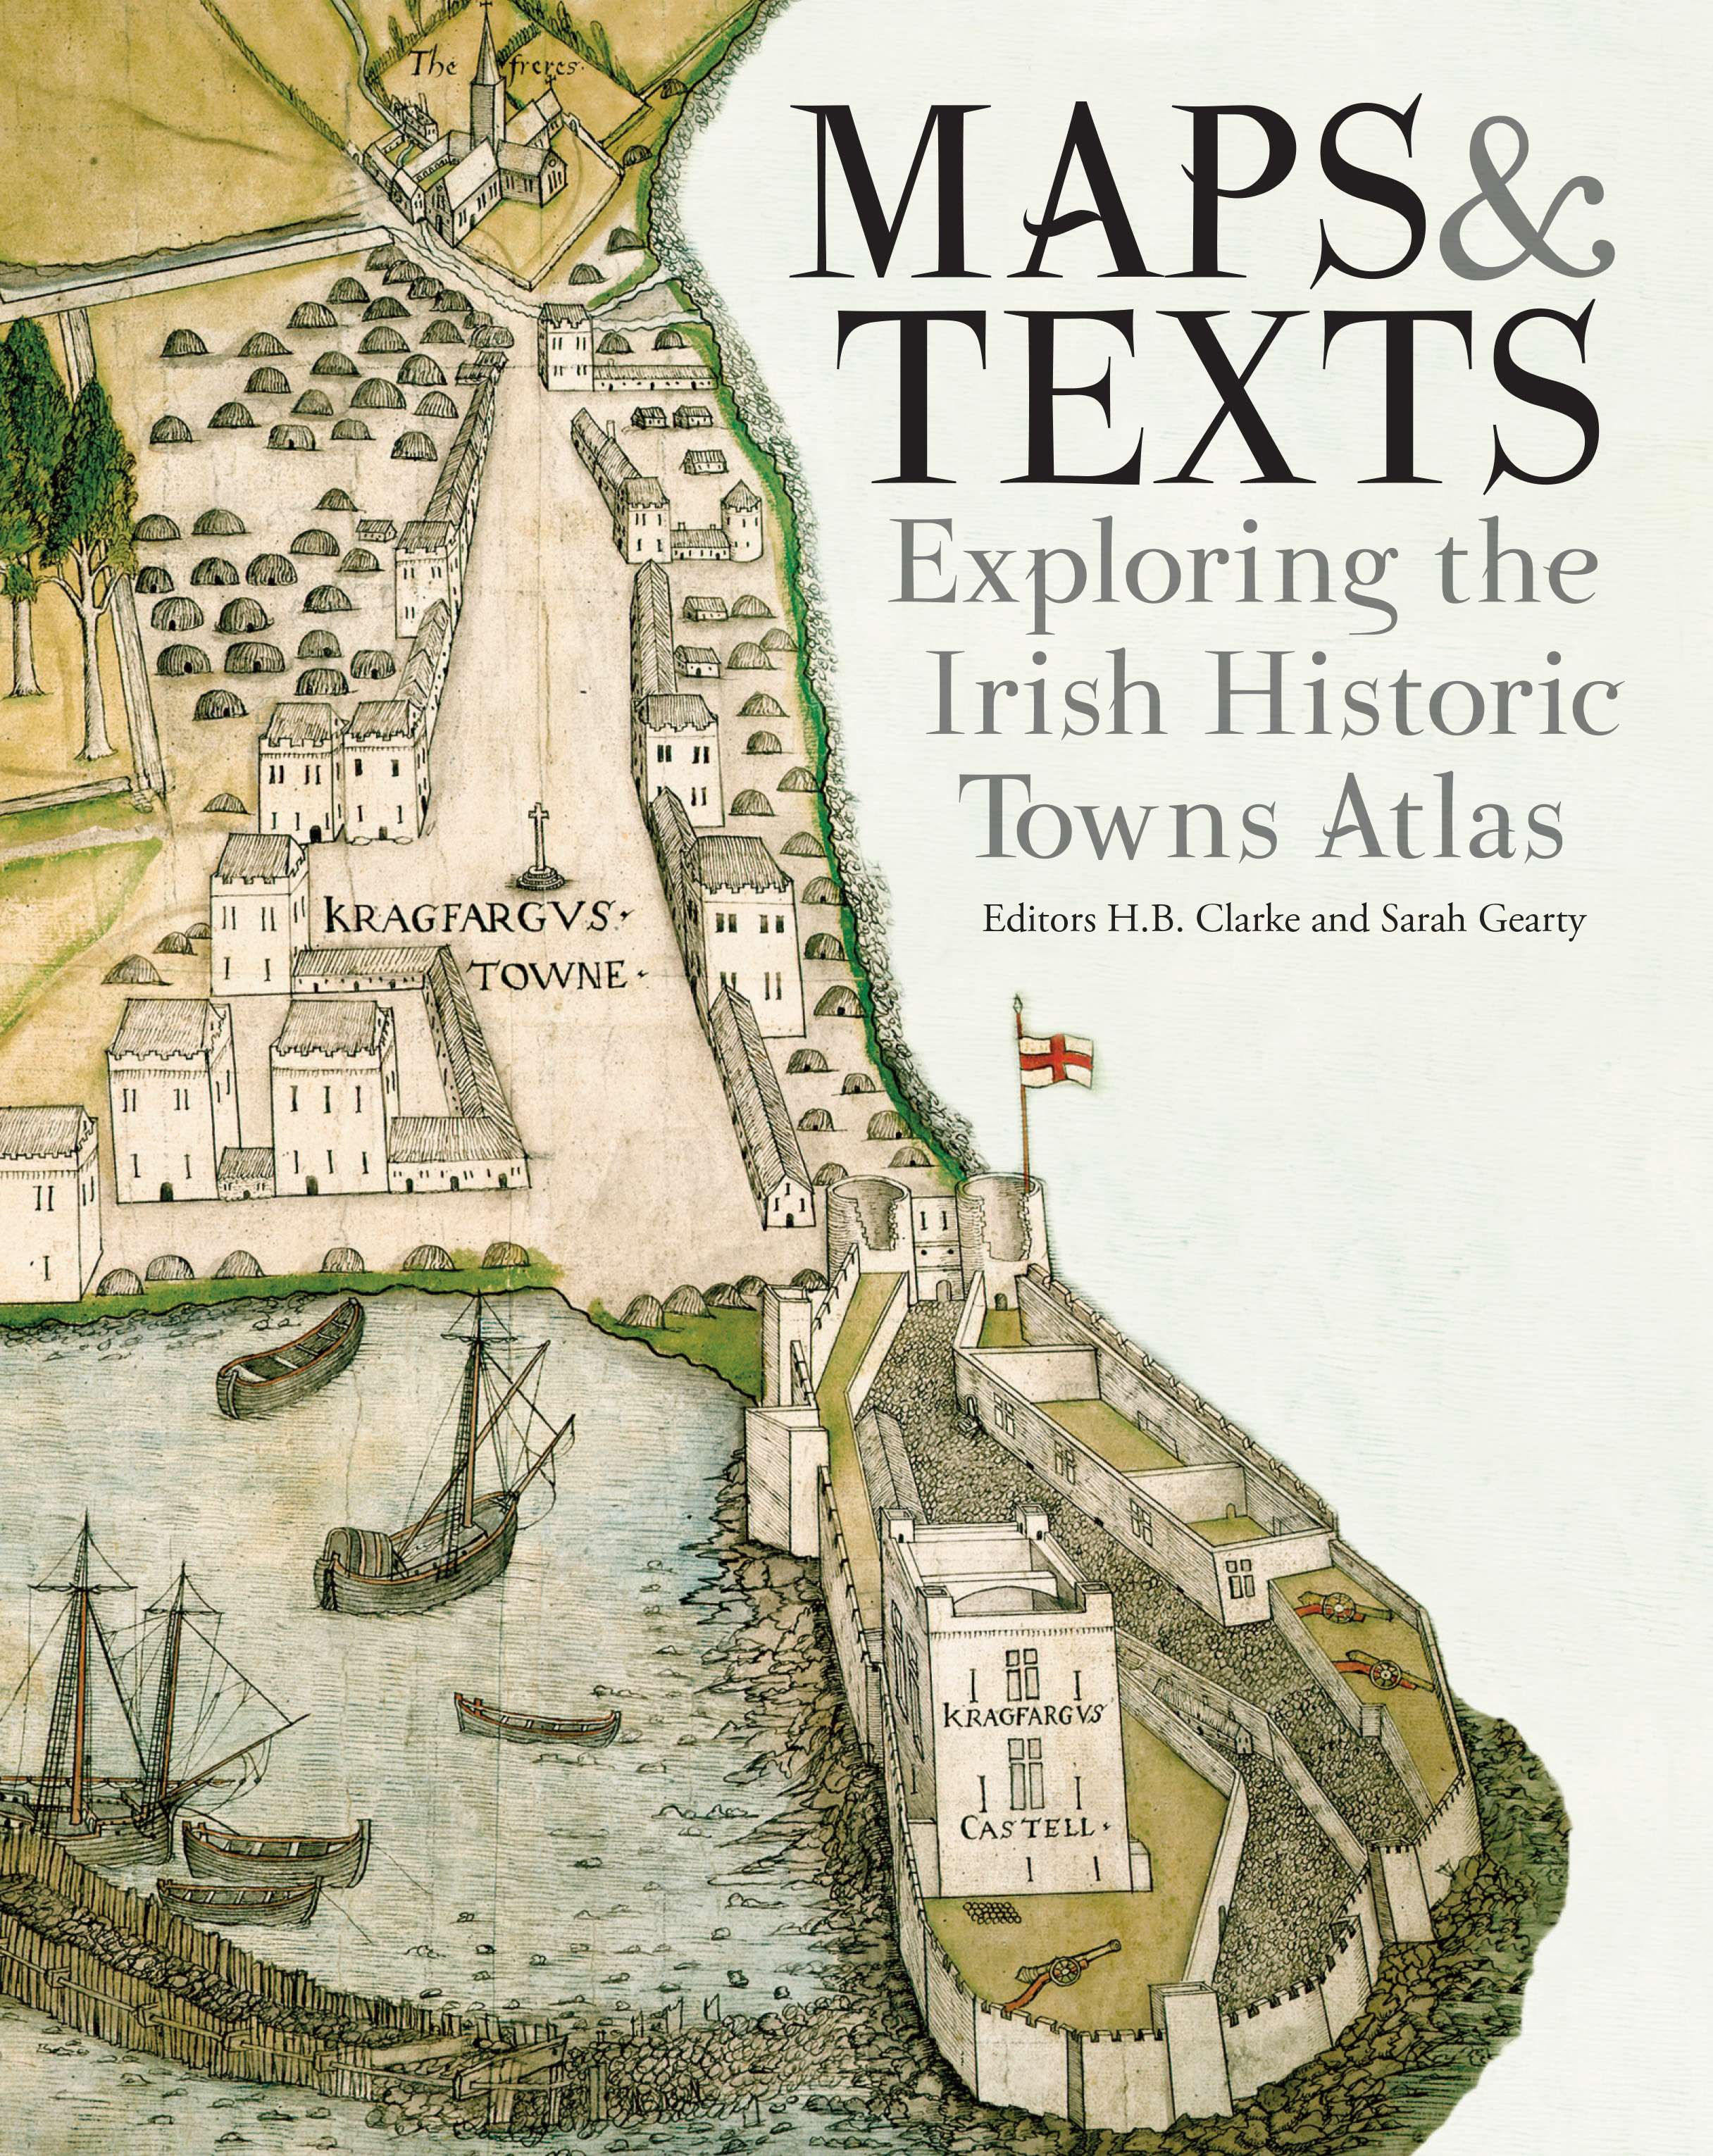 Map Of Ireland With Towns And Villages.Maps Texts Exploring The Irish Historic Towns Atlas Royal Irish